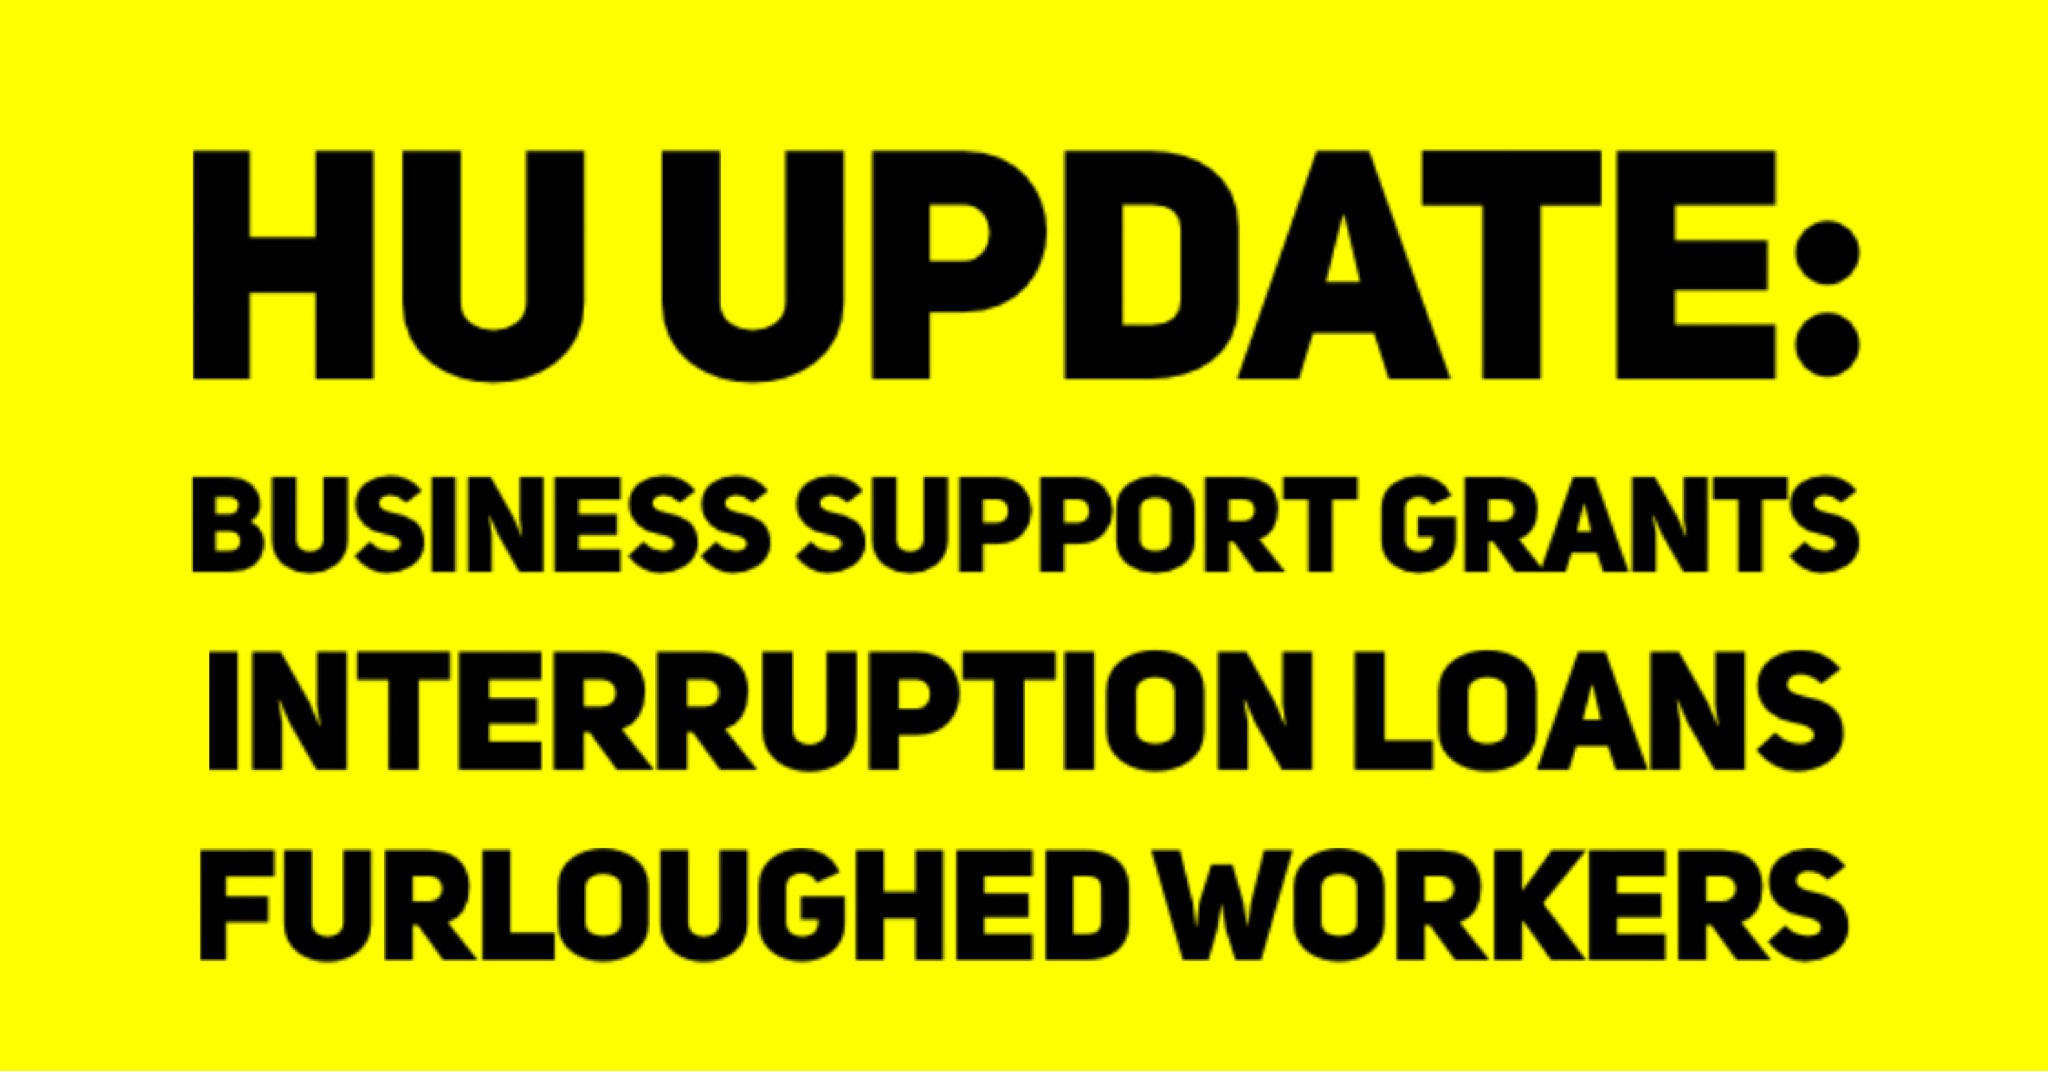 HU UPDATE Business Support Grants Interruption Loans Furloughed Workers